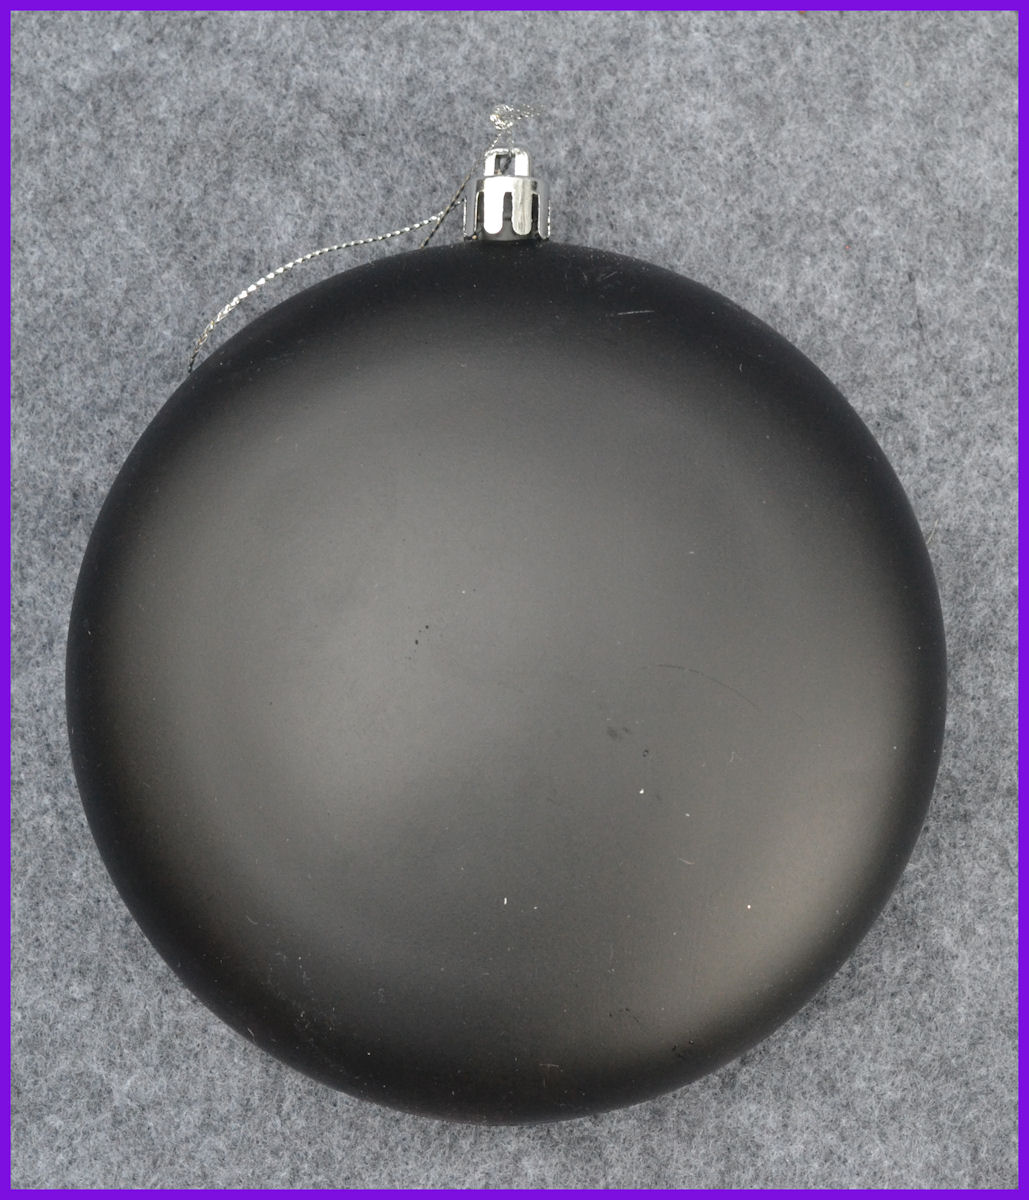 da-black-ornament-5-inch-8909205747-sm.jpg